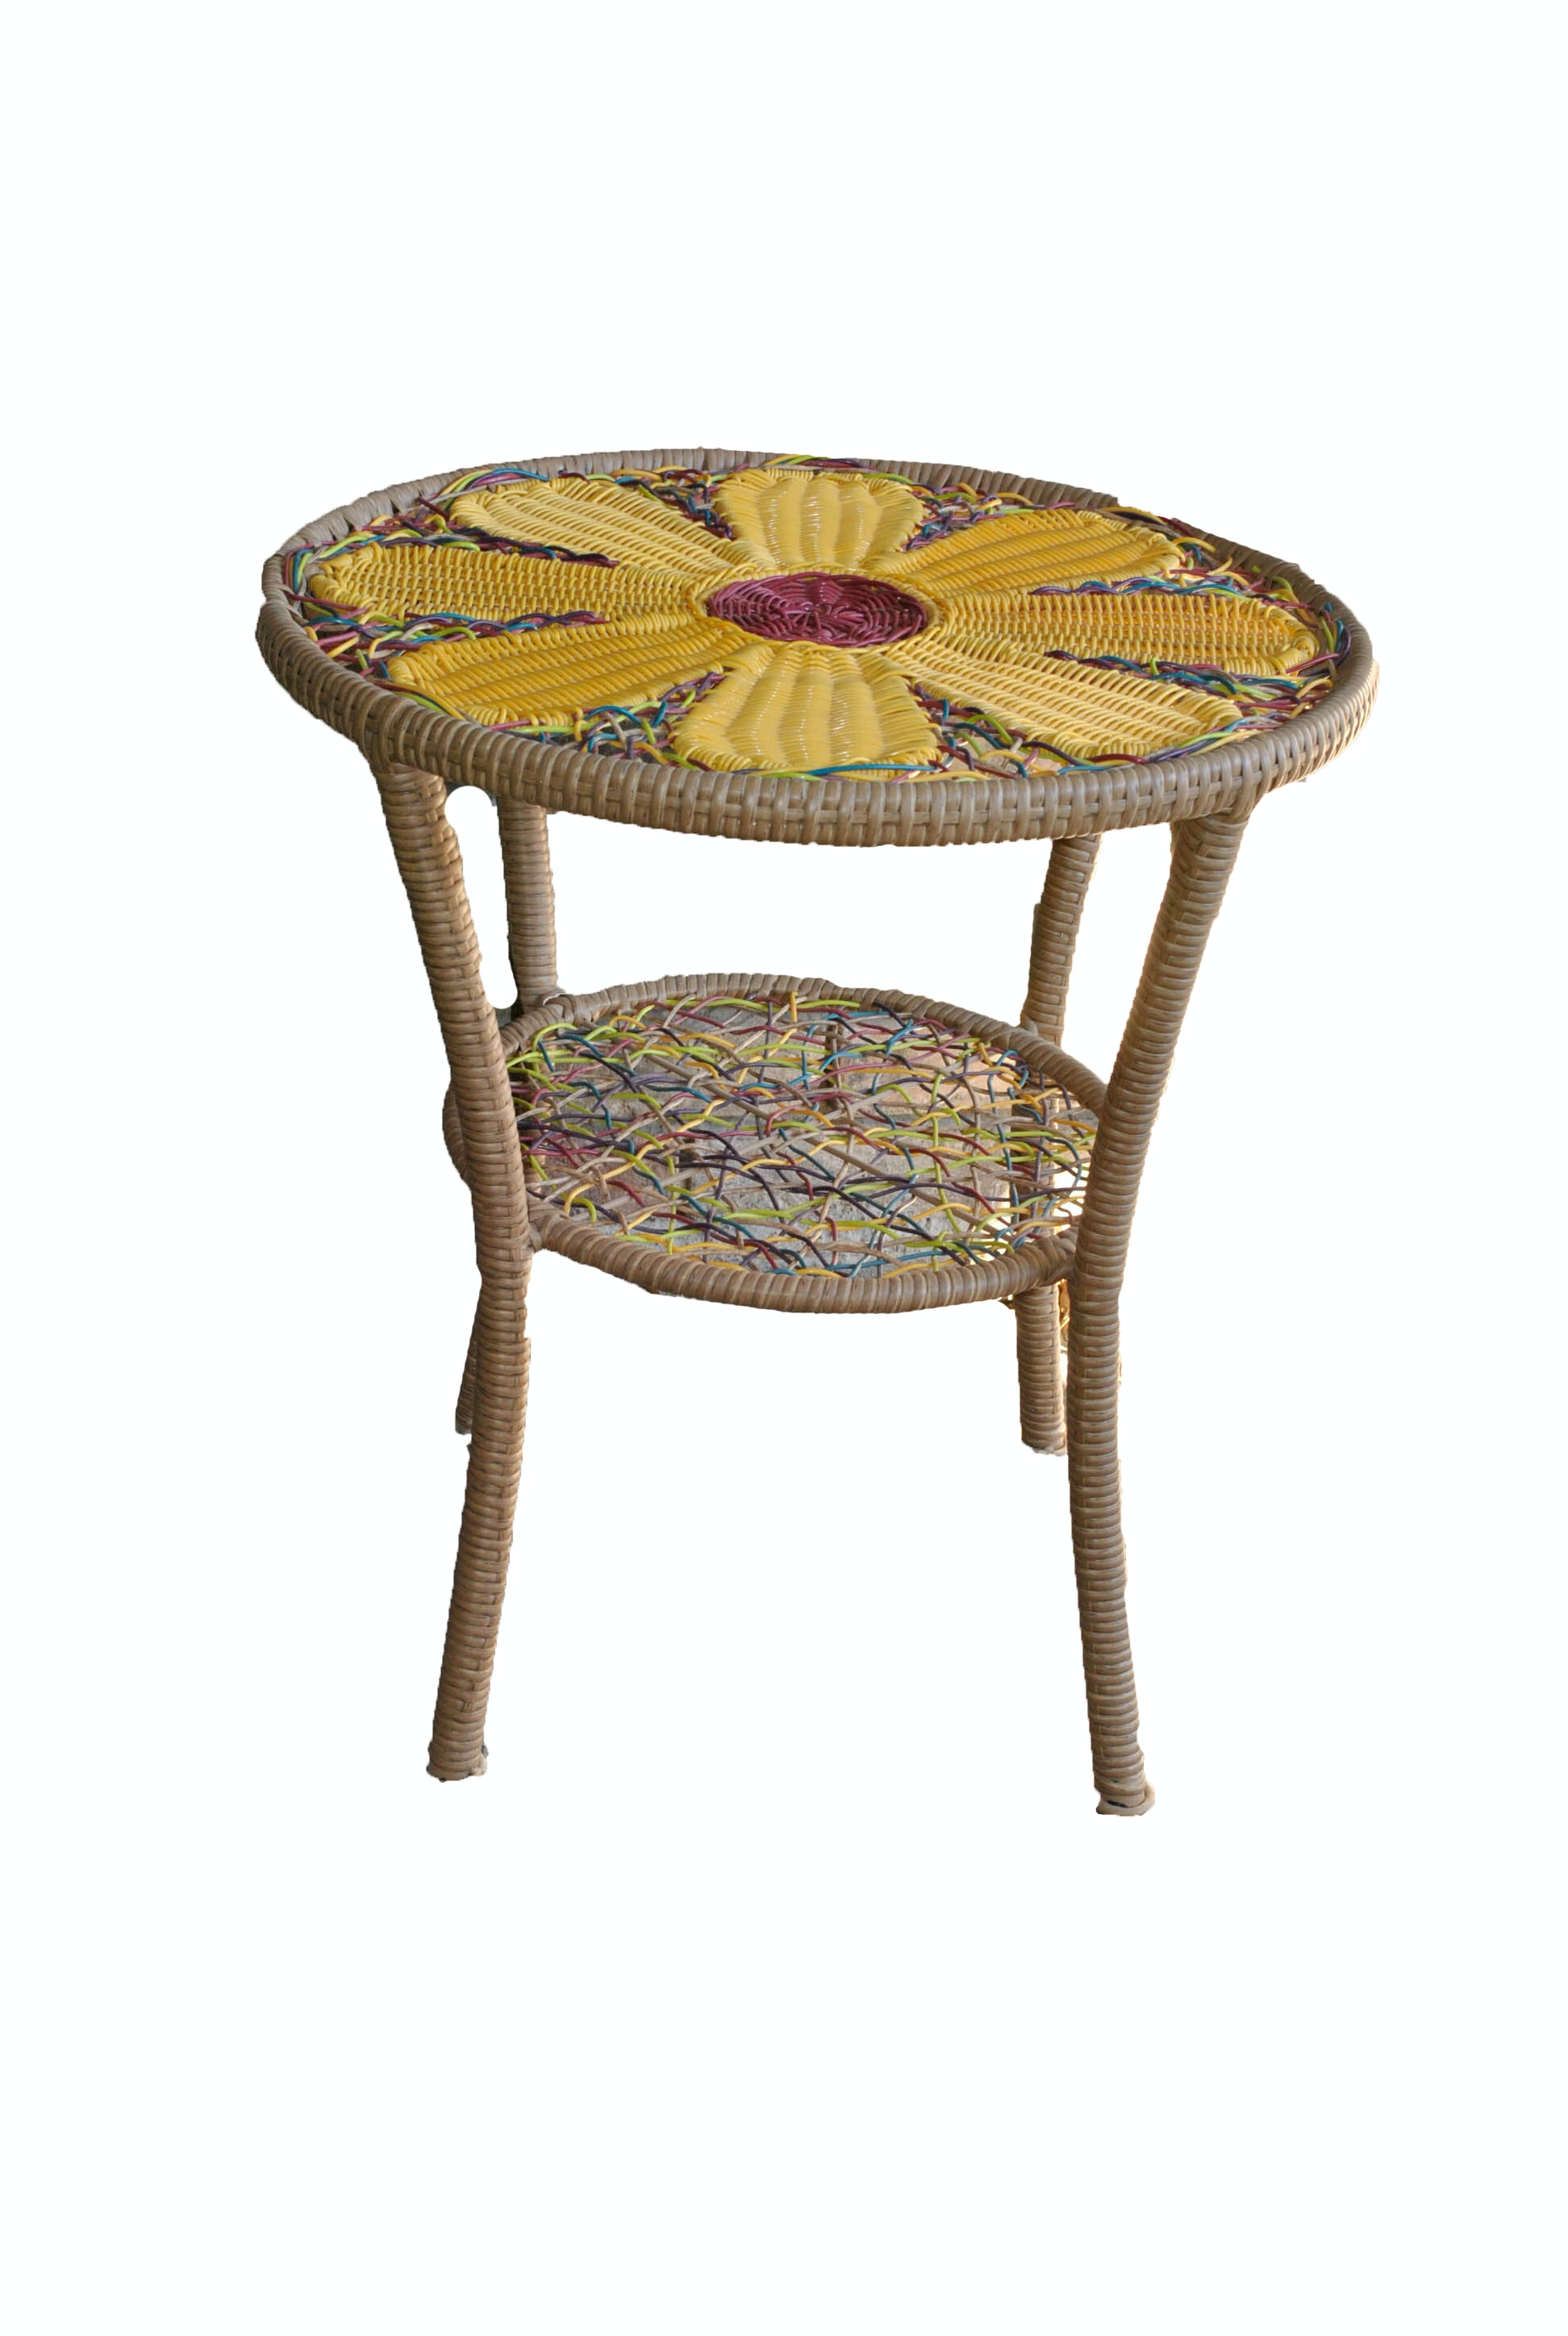 Bohemian Style Wicker Side Table with Yellow Daisy Motif